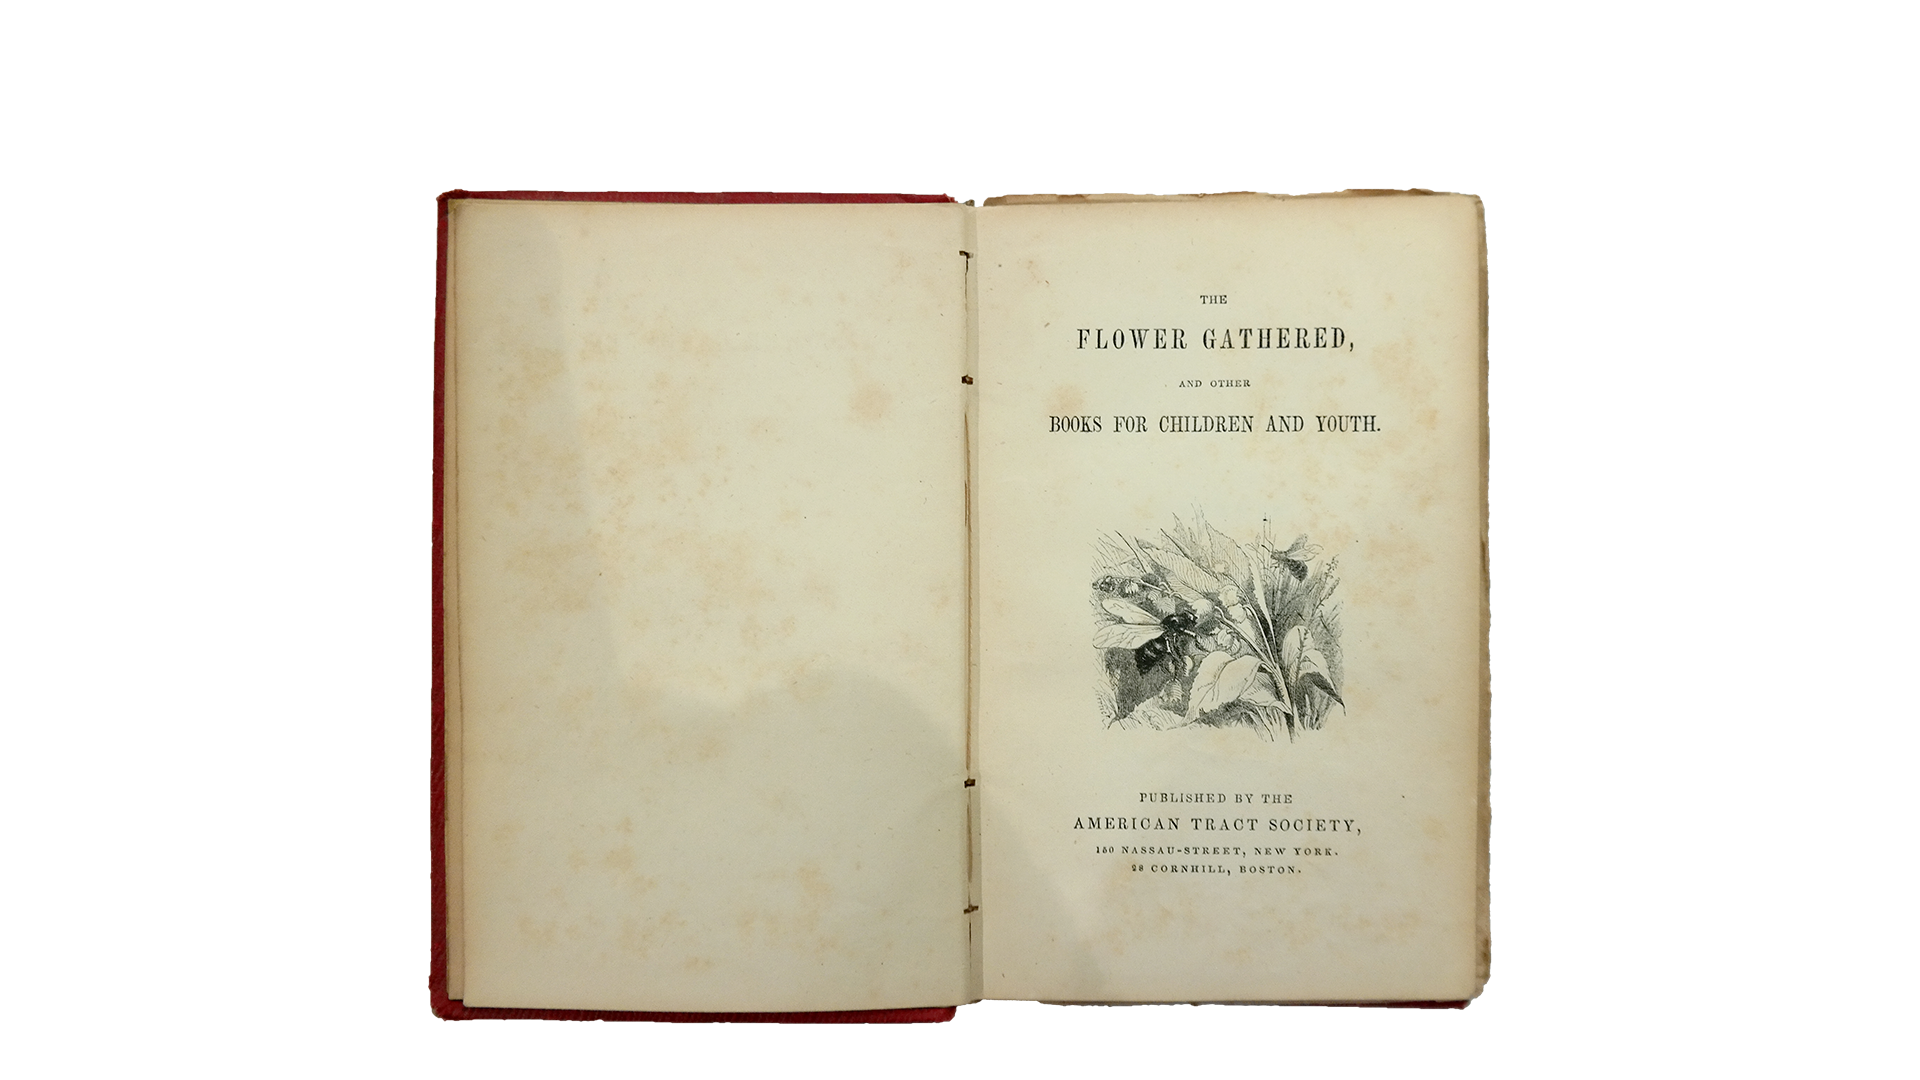 The flower gathered, and other books for children and youth